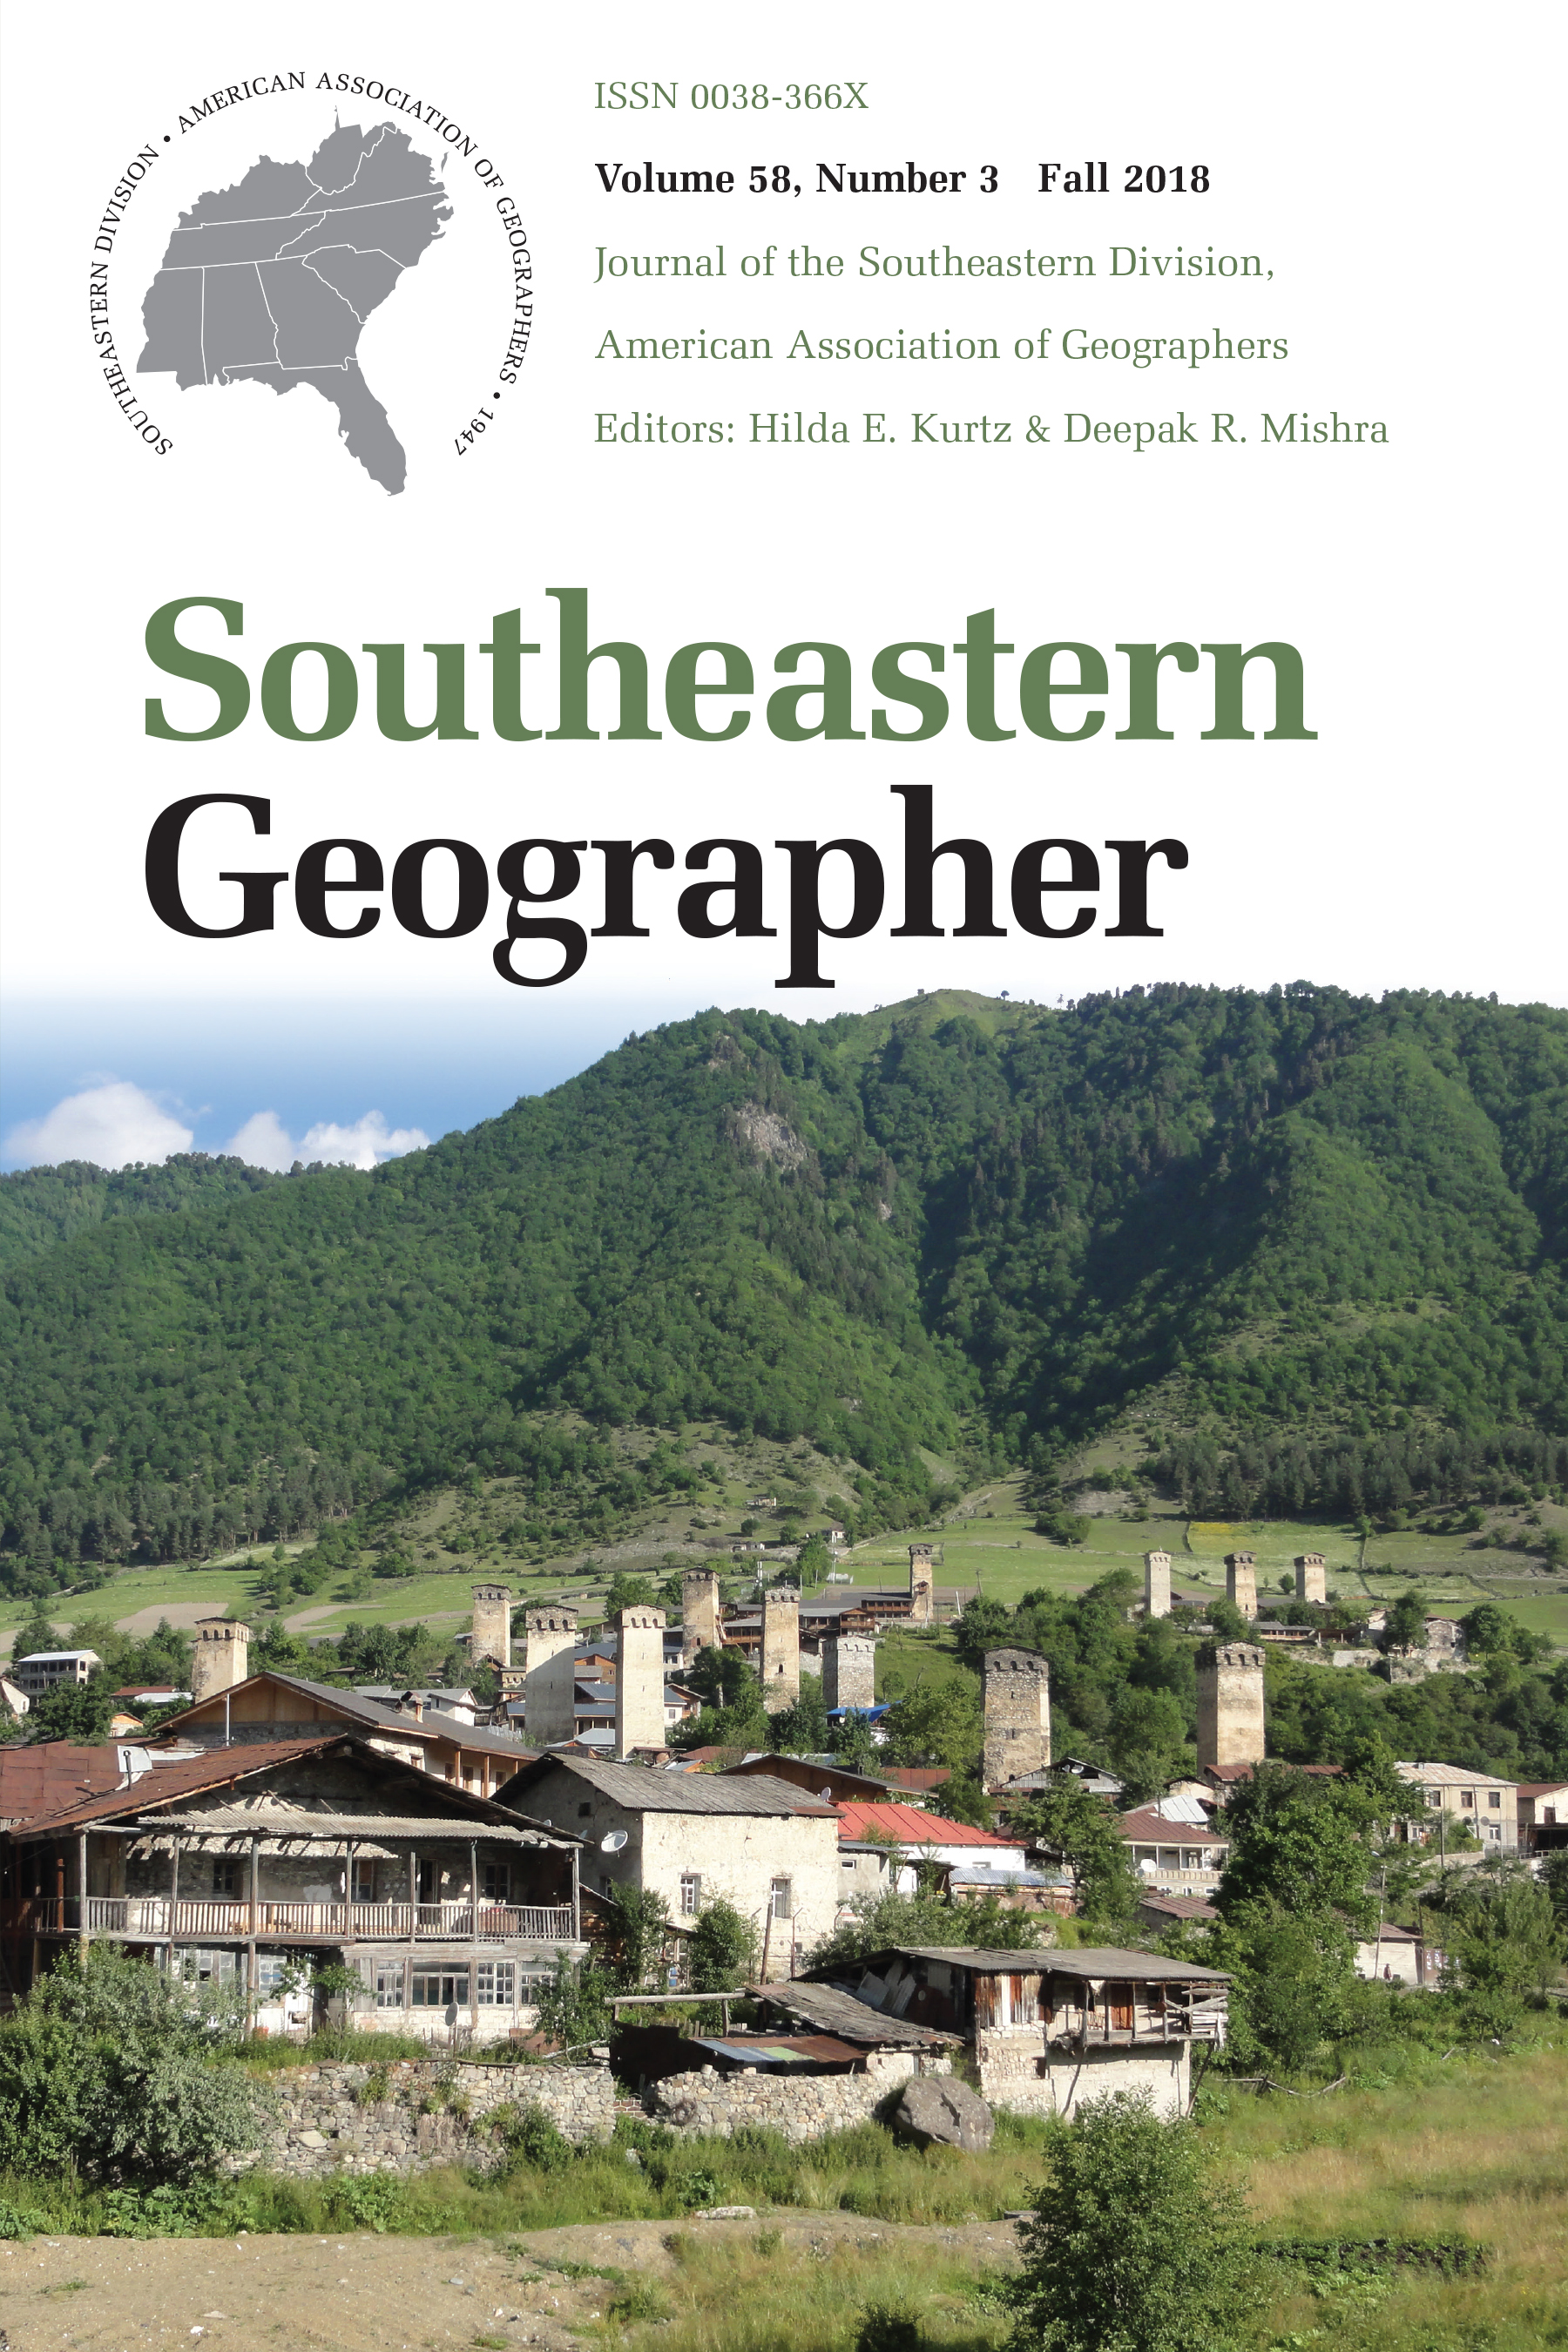 Southeastern Geographer, vol. 58 issue 3